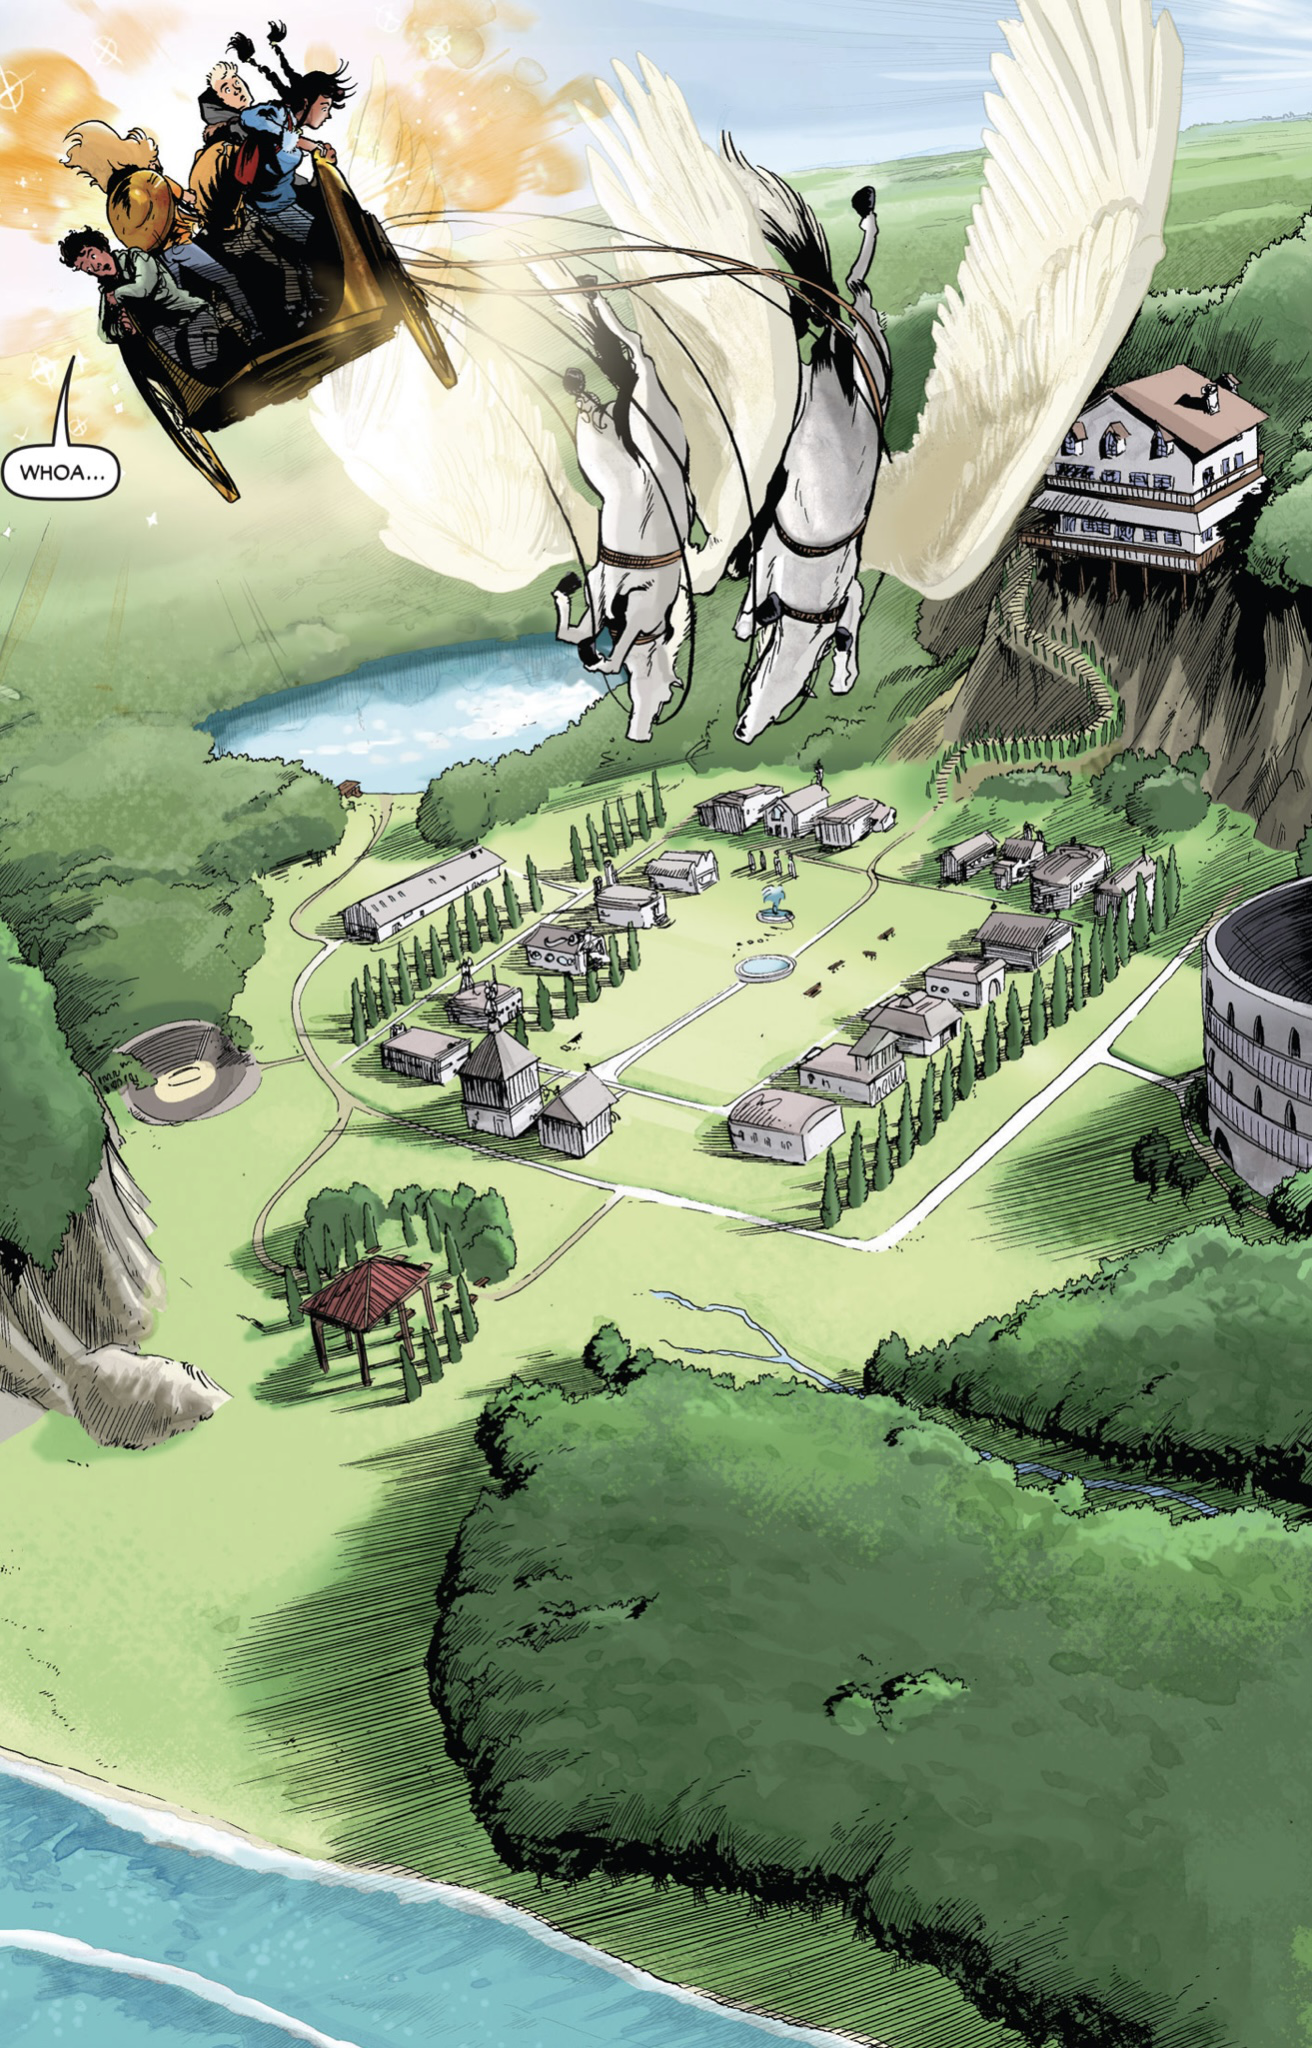 File:Cabins aerial view GN.png